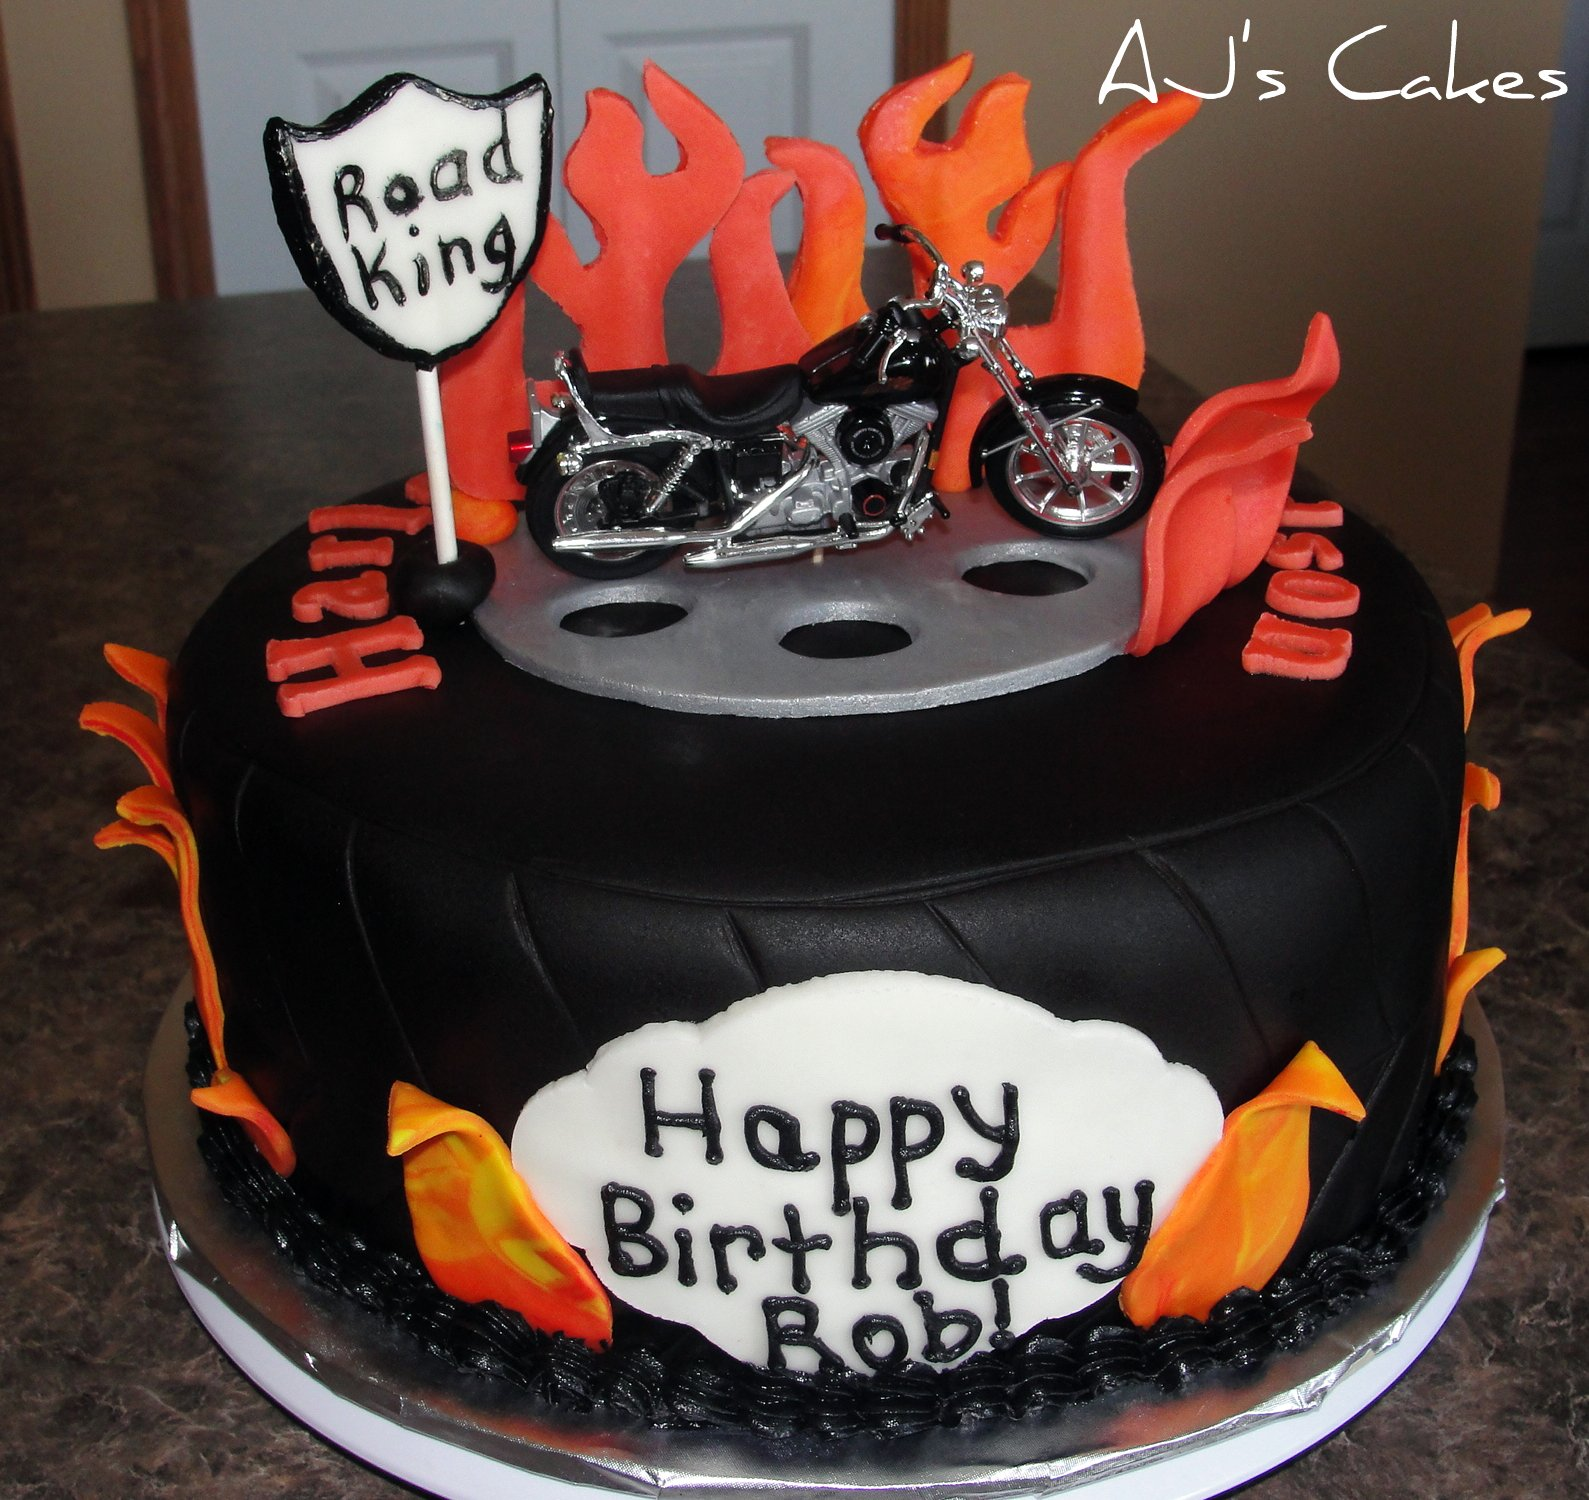 Birthday Cake Ideas Motorcycle : AJ s Cakes: Tire and Flame Motorcycle Cake